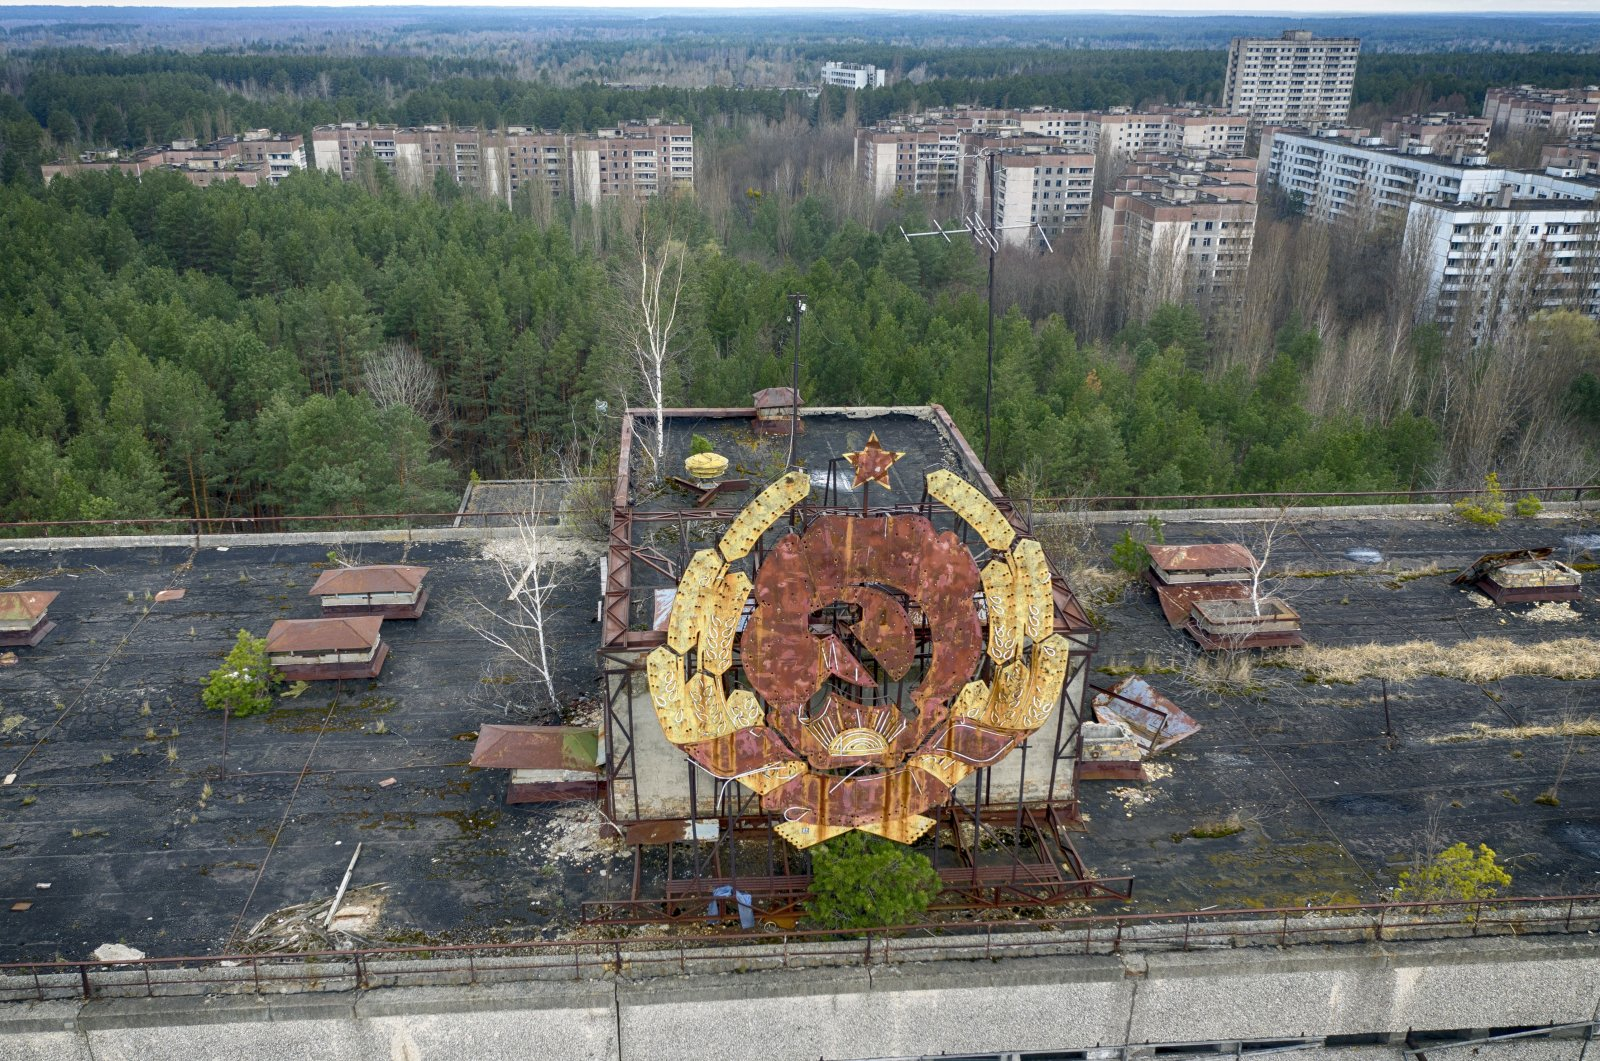 The rusty emblem of the Soviet Union is seen over the ghost town of Pripyat close to the Chernobyl nuclear plant, Ukraine, April 15, 2021. (AP Photo)